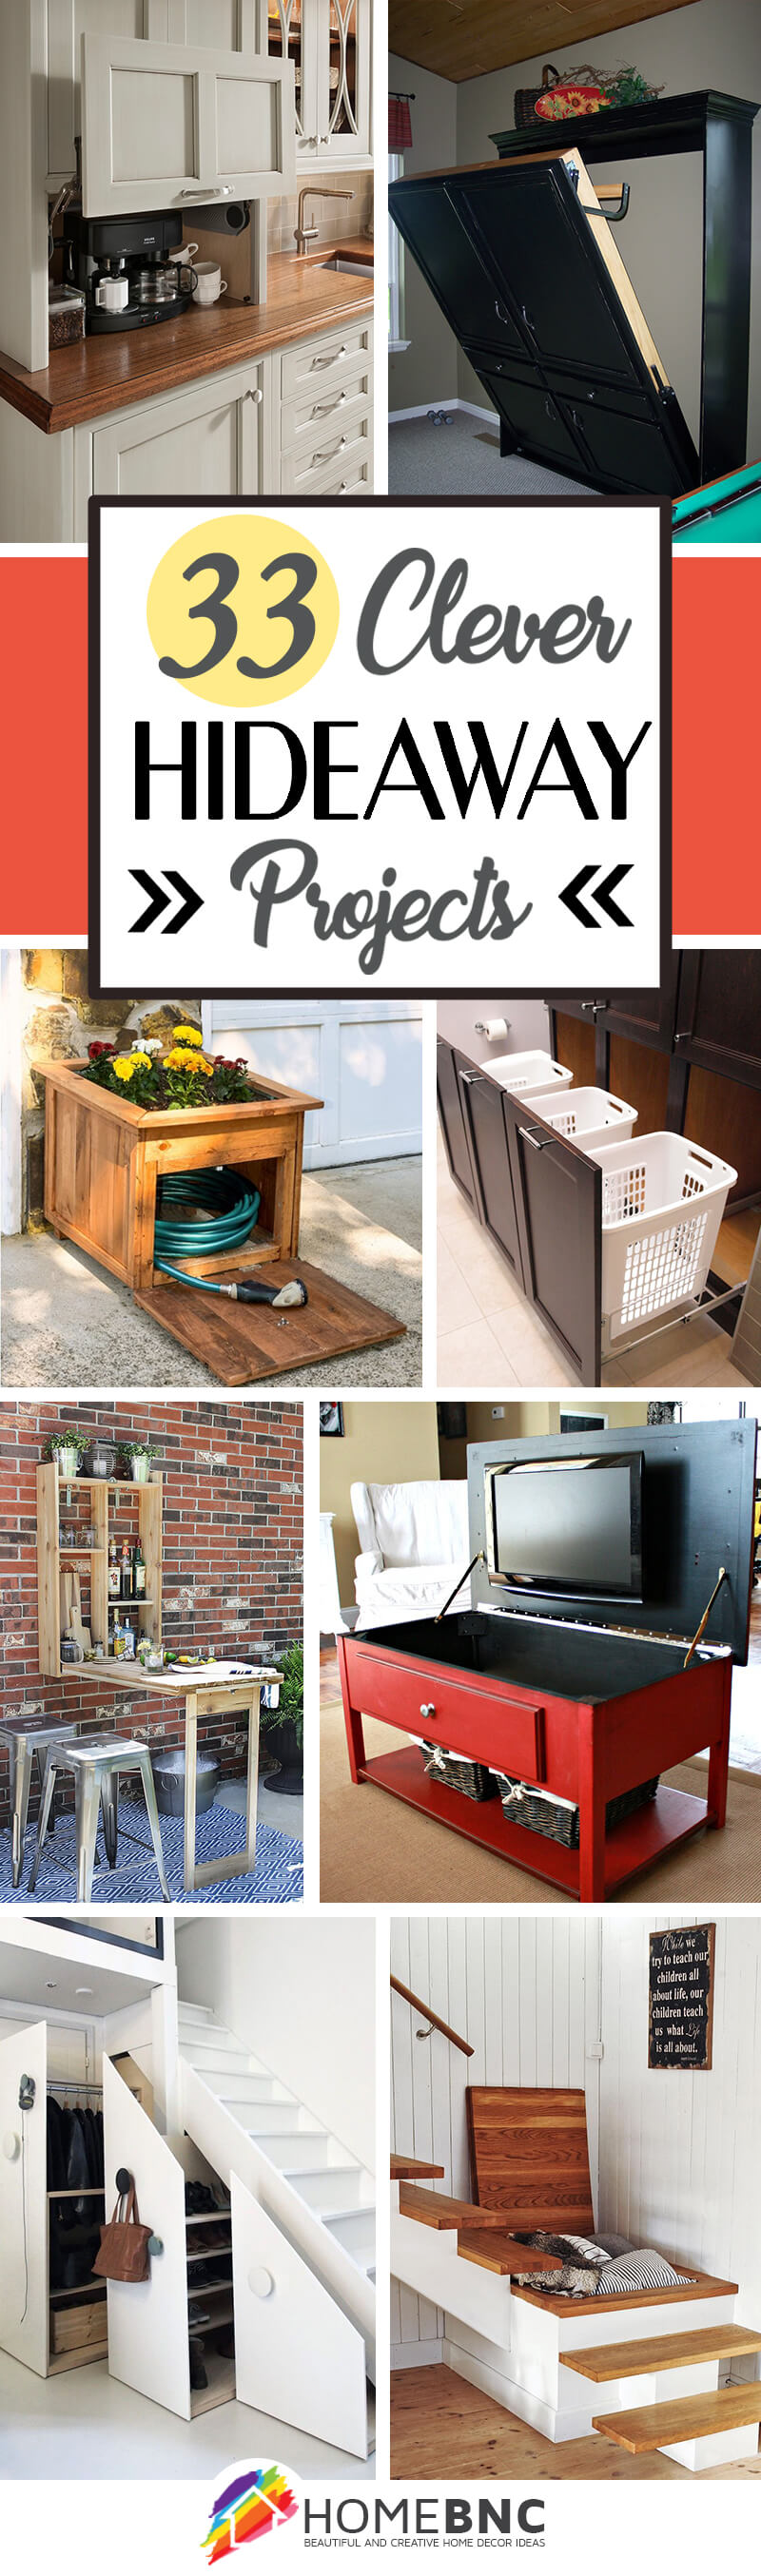 33 Best Hideaway Projects Ideas and Designs for 2018